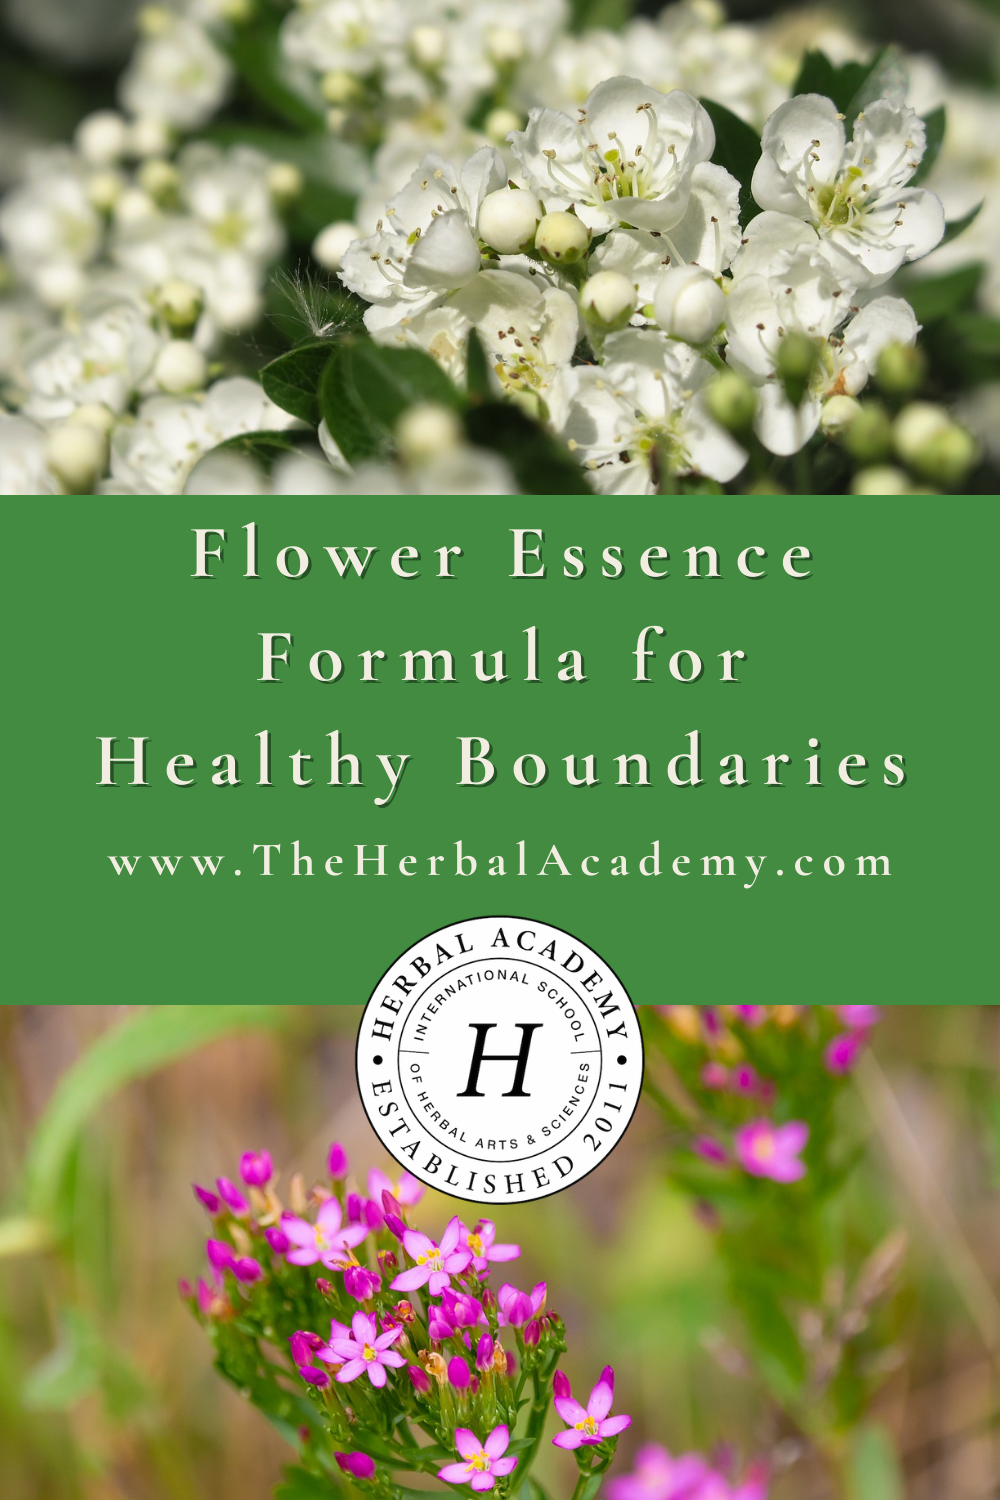 Flower Essence Formula for Healthy Boundaries | Herbal Academy | Since boundaries are often perceived and felt energetically, flower essences are an herbal tool for healthy boundaries from the inside out.